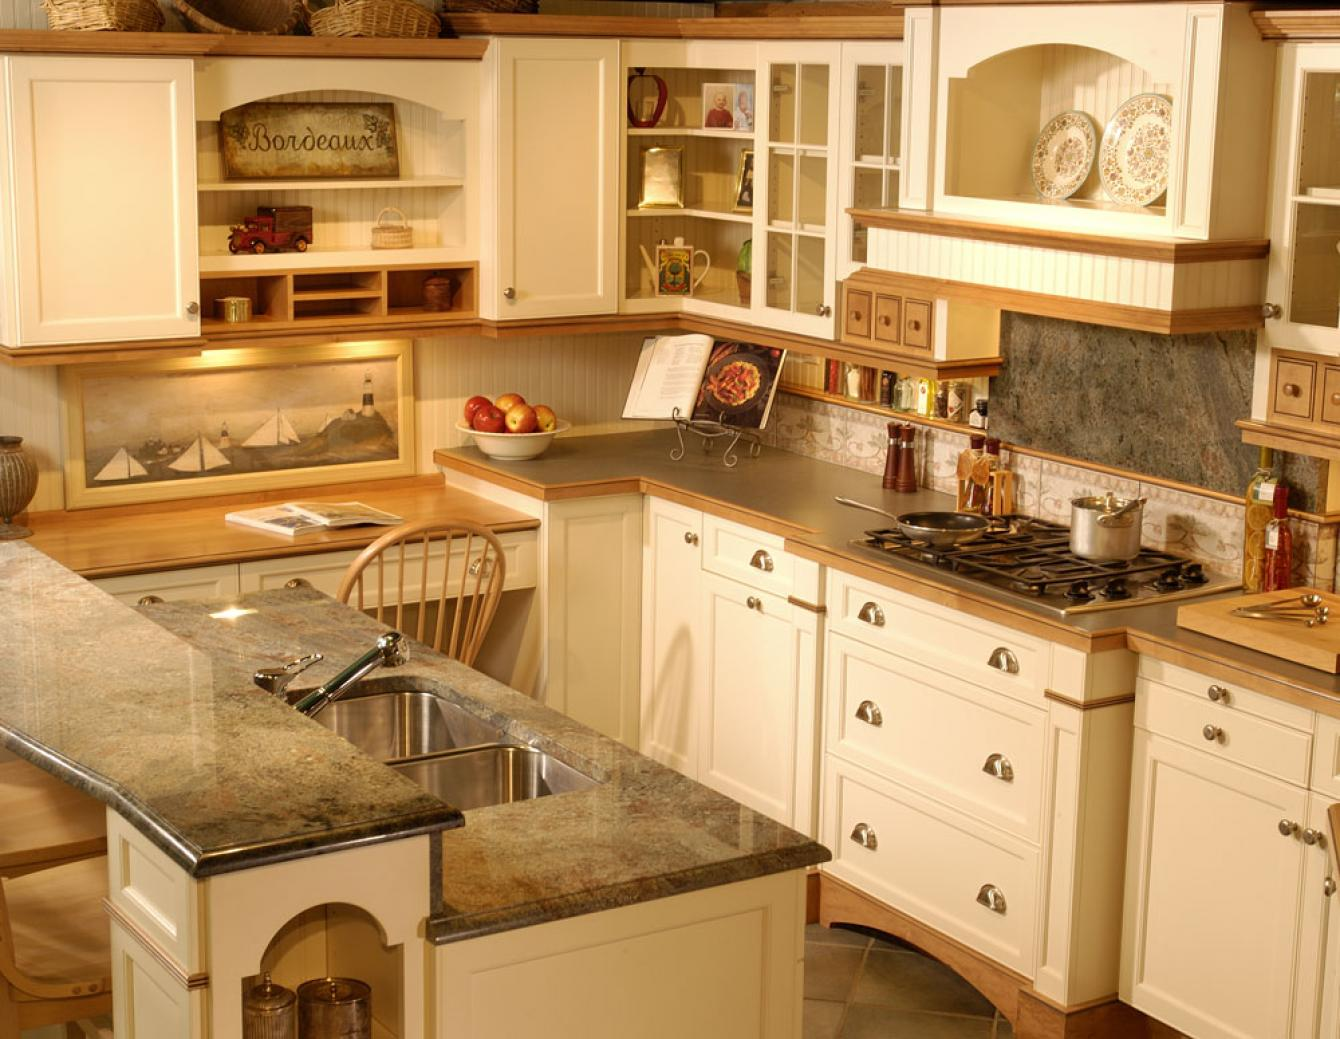 Rustic Kitchen Designs Photo Gallery Rustic Kitchen Design Gallery  Dover Woods